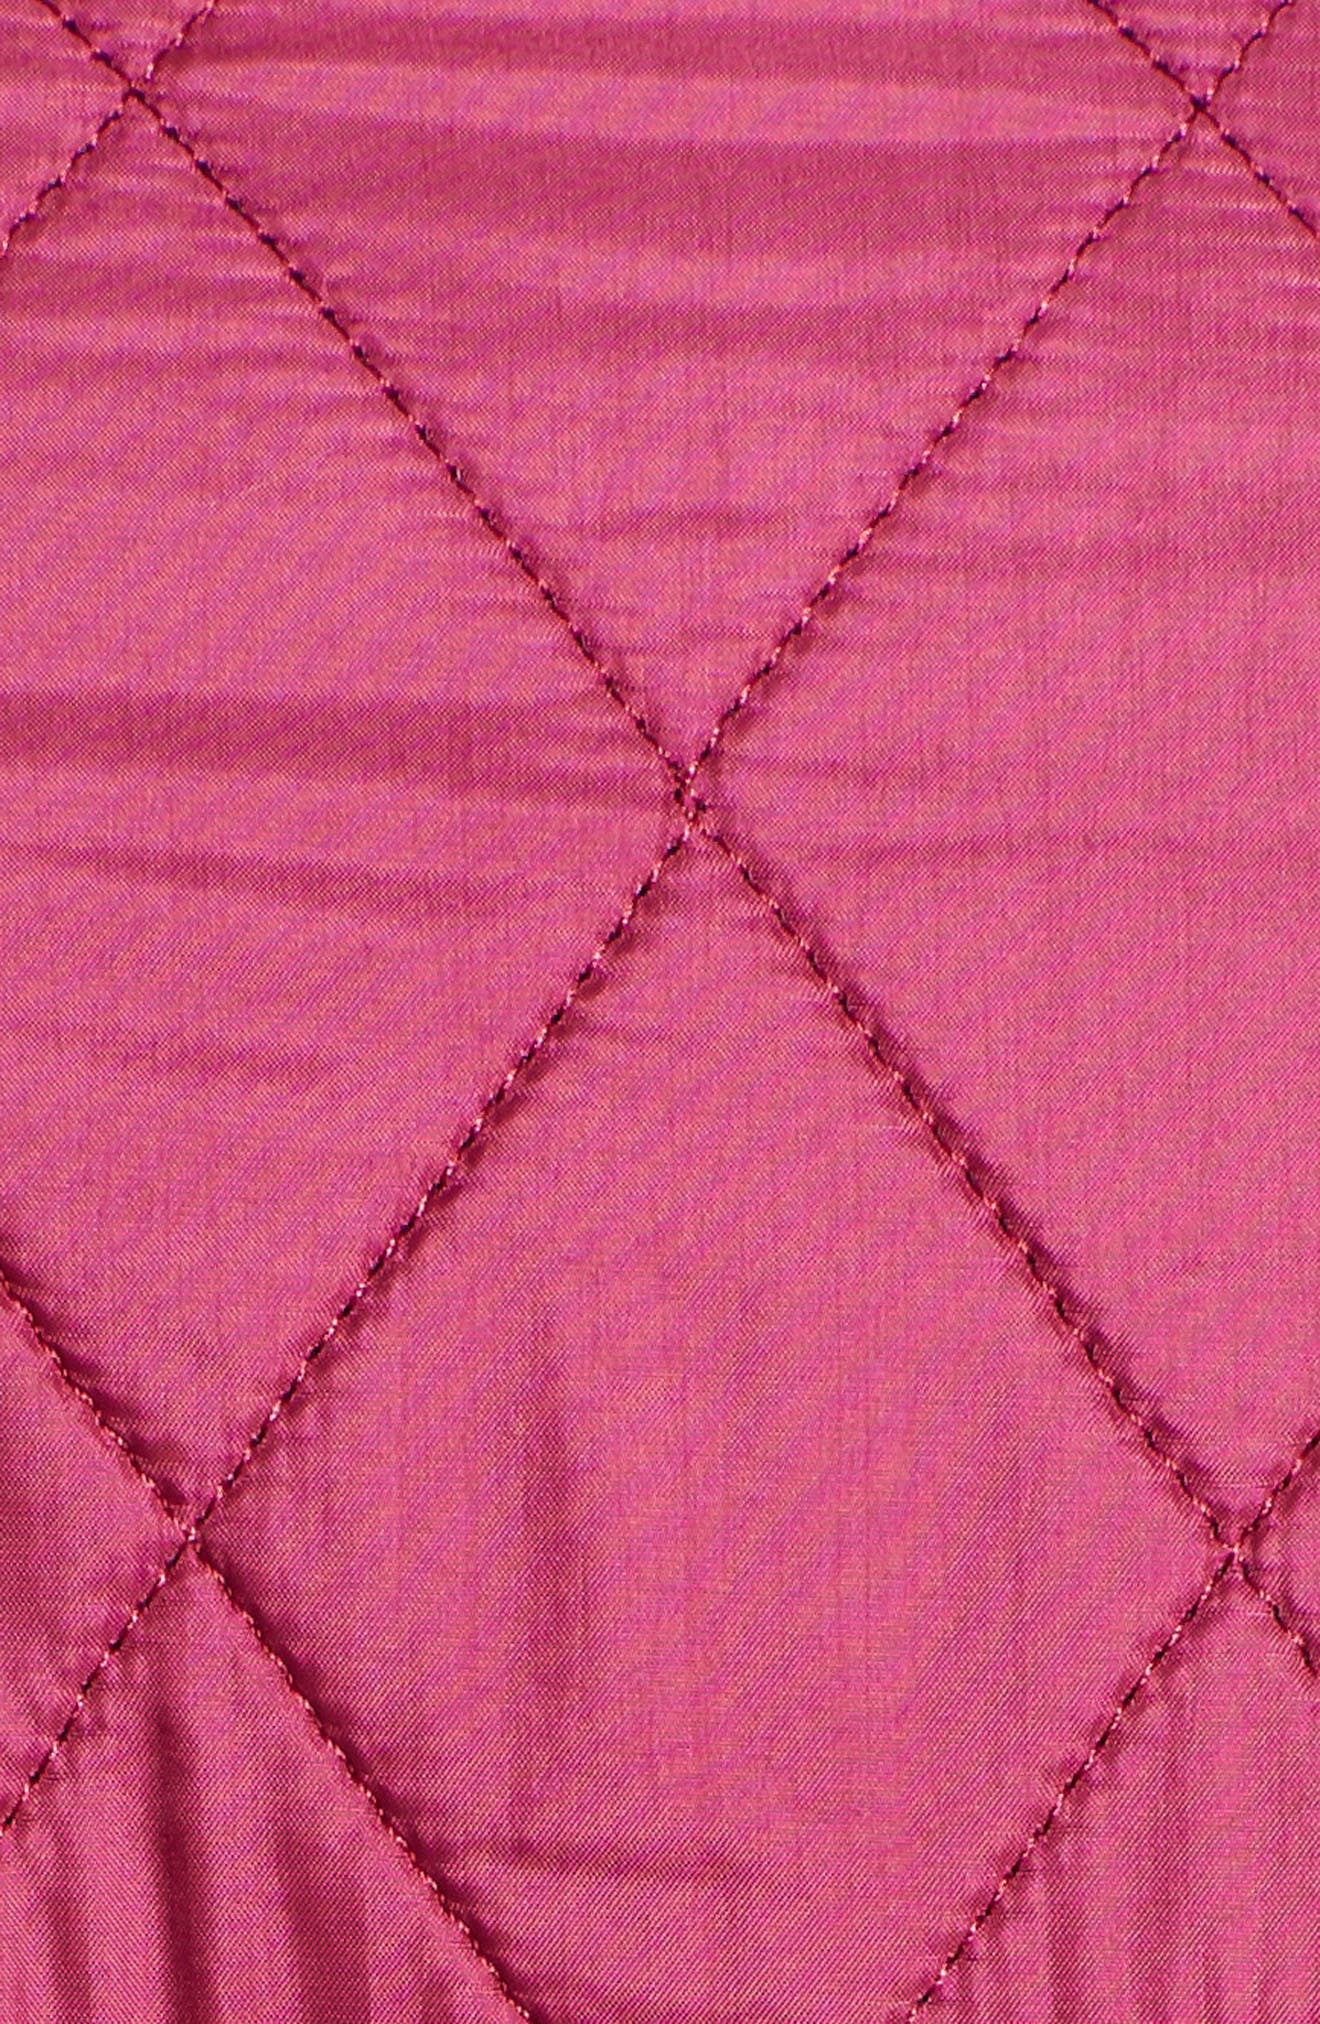 'Cavalry' Quilted Jacket,                             Alternate thumbnail 6, color,                             BERRY PINK / NAVY